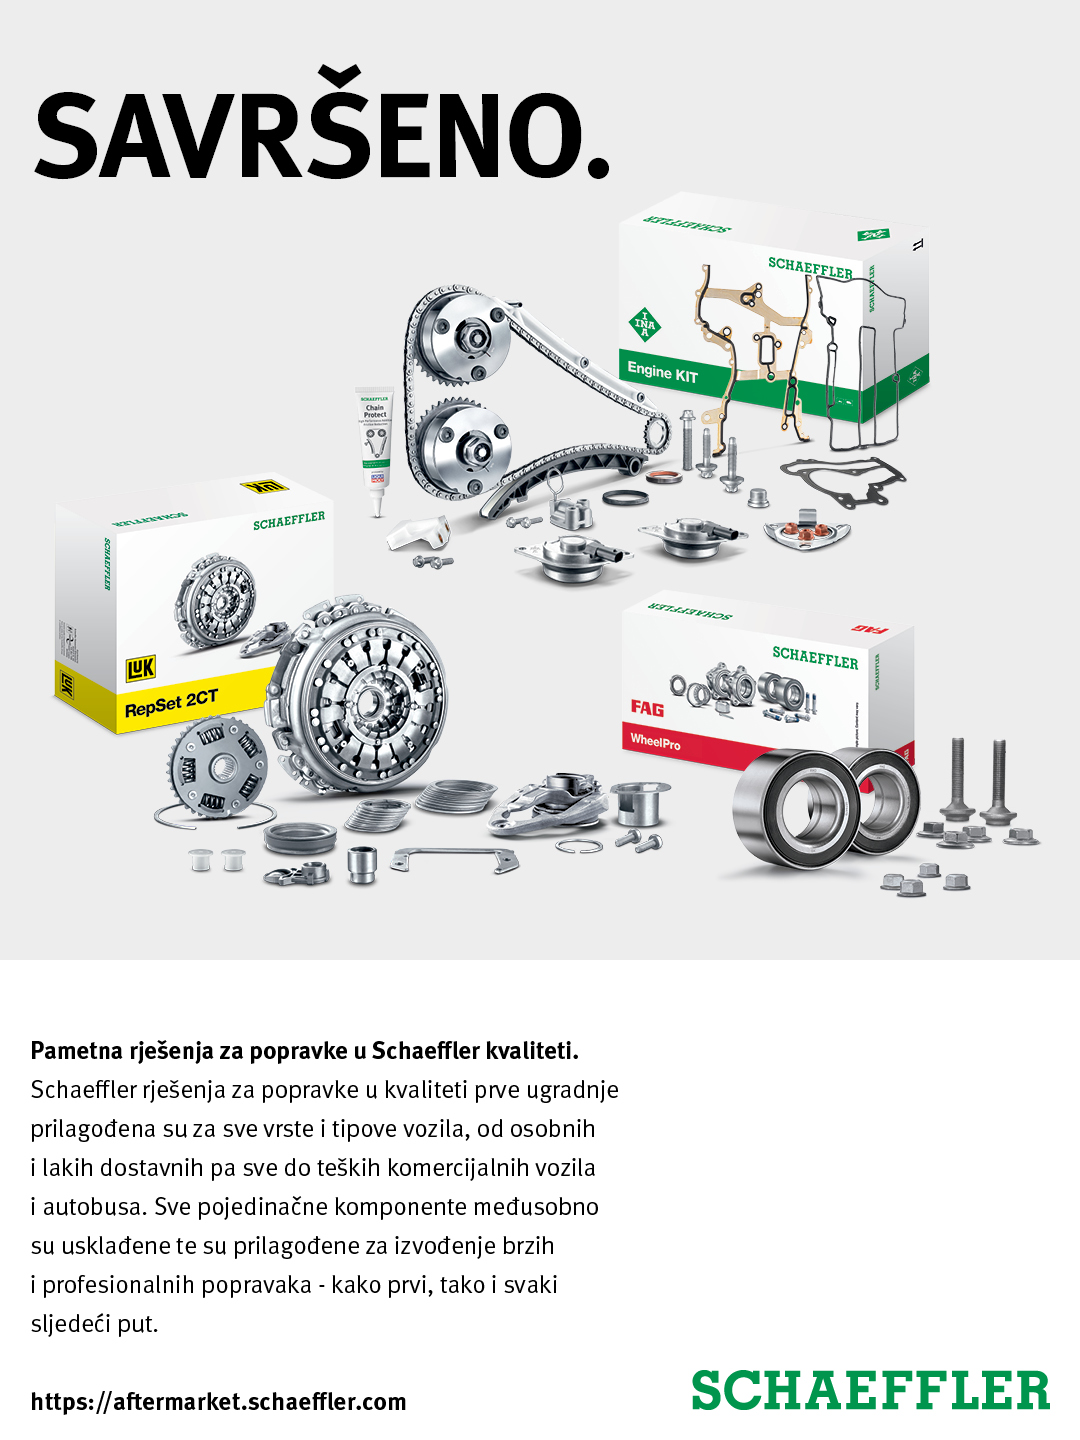 https://aftermarket.schaeffler.com/en